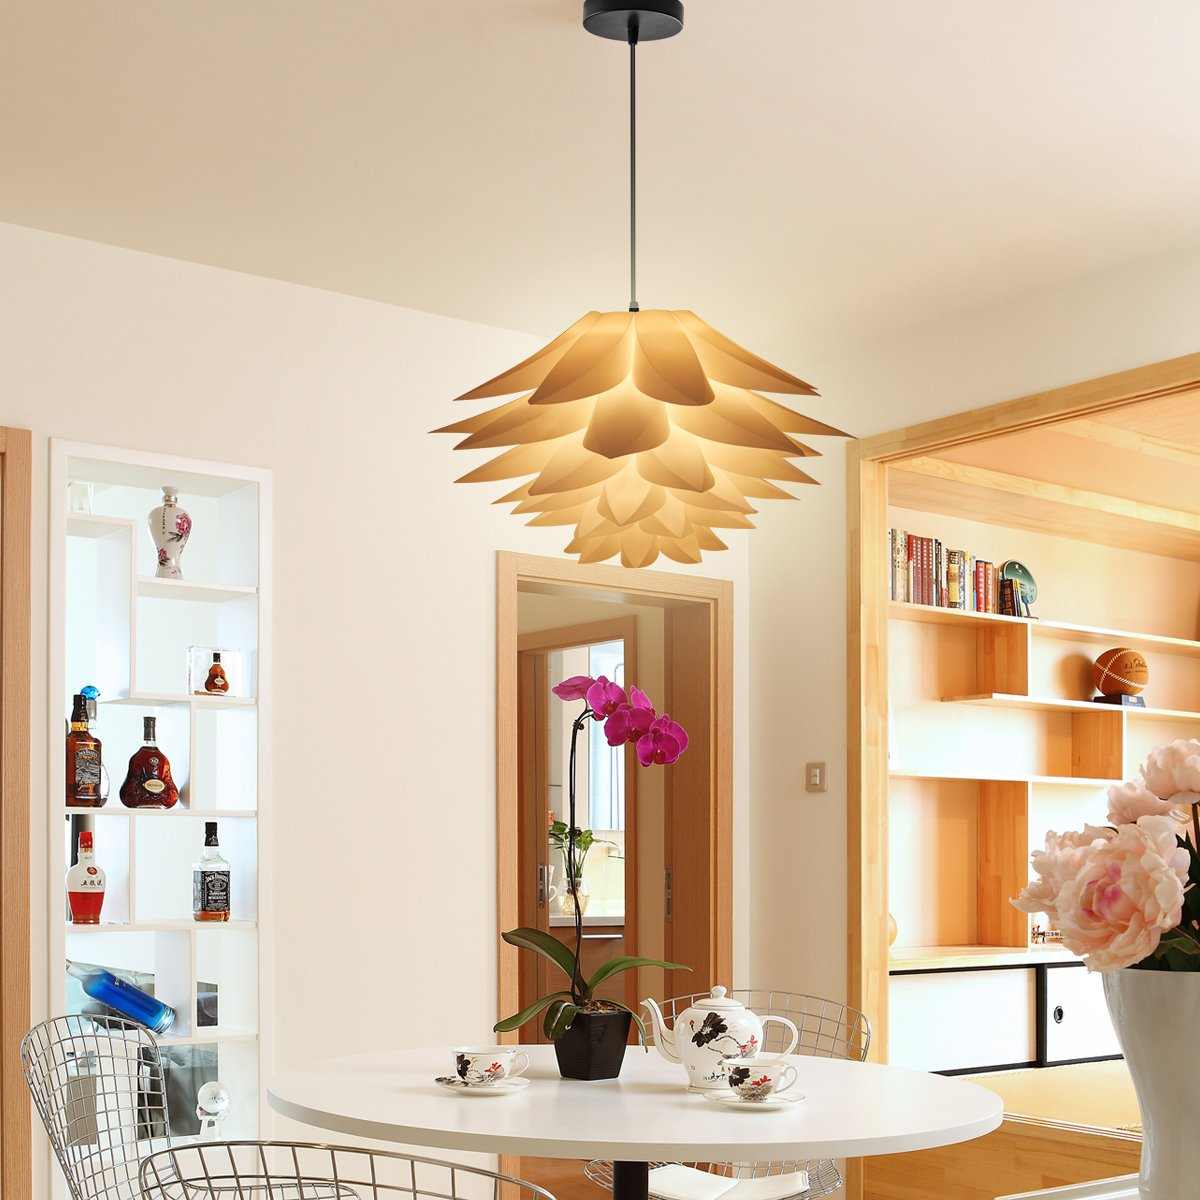 Excelvan diy kit lotus chandelier iq pp pendant lampshade suspension excelvan diy kit lotus chandelier iq pp pendant lampshade suspension ceiling pendant chandelier light shade lamp for holiday living room bedroom study aloadofball Image collections